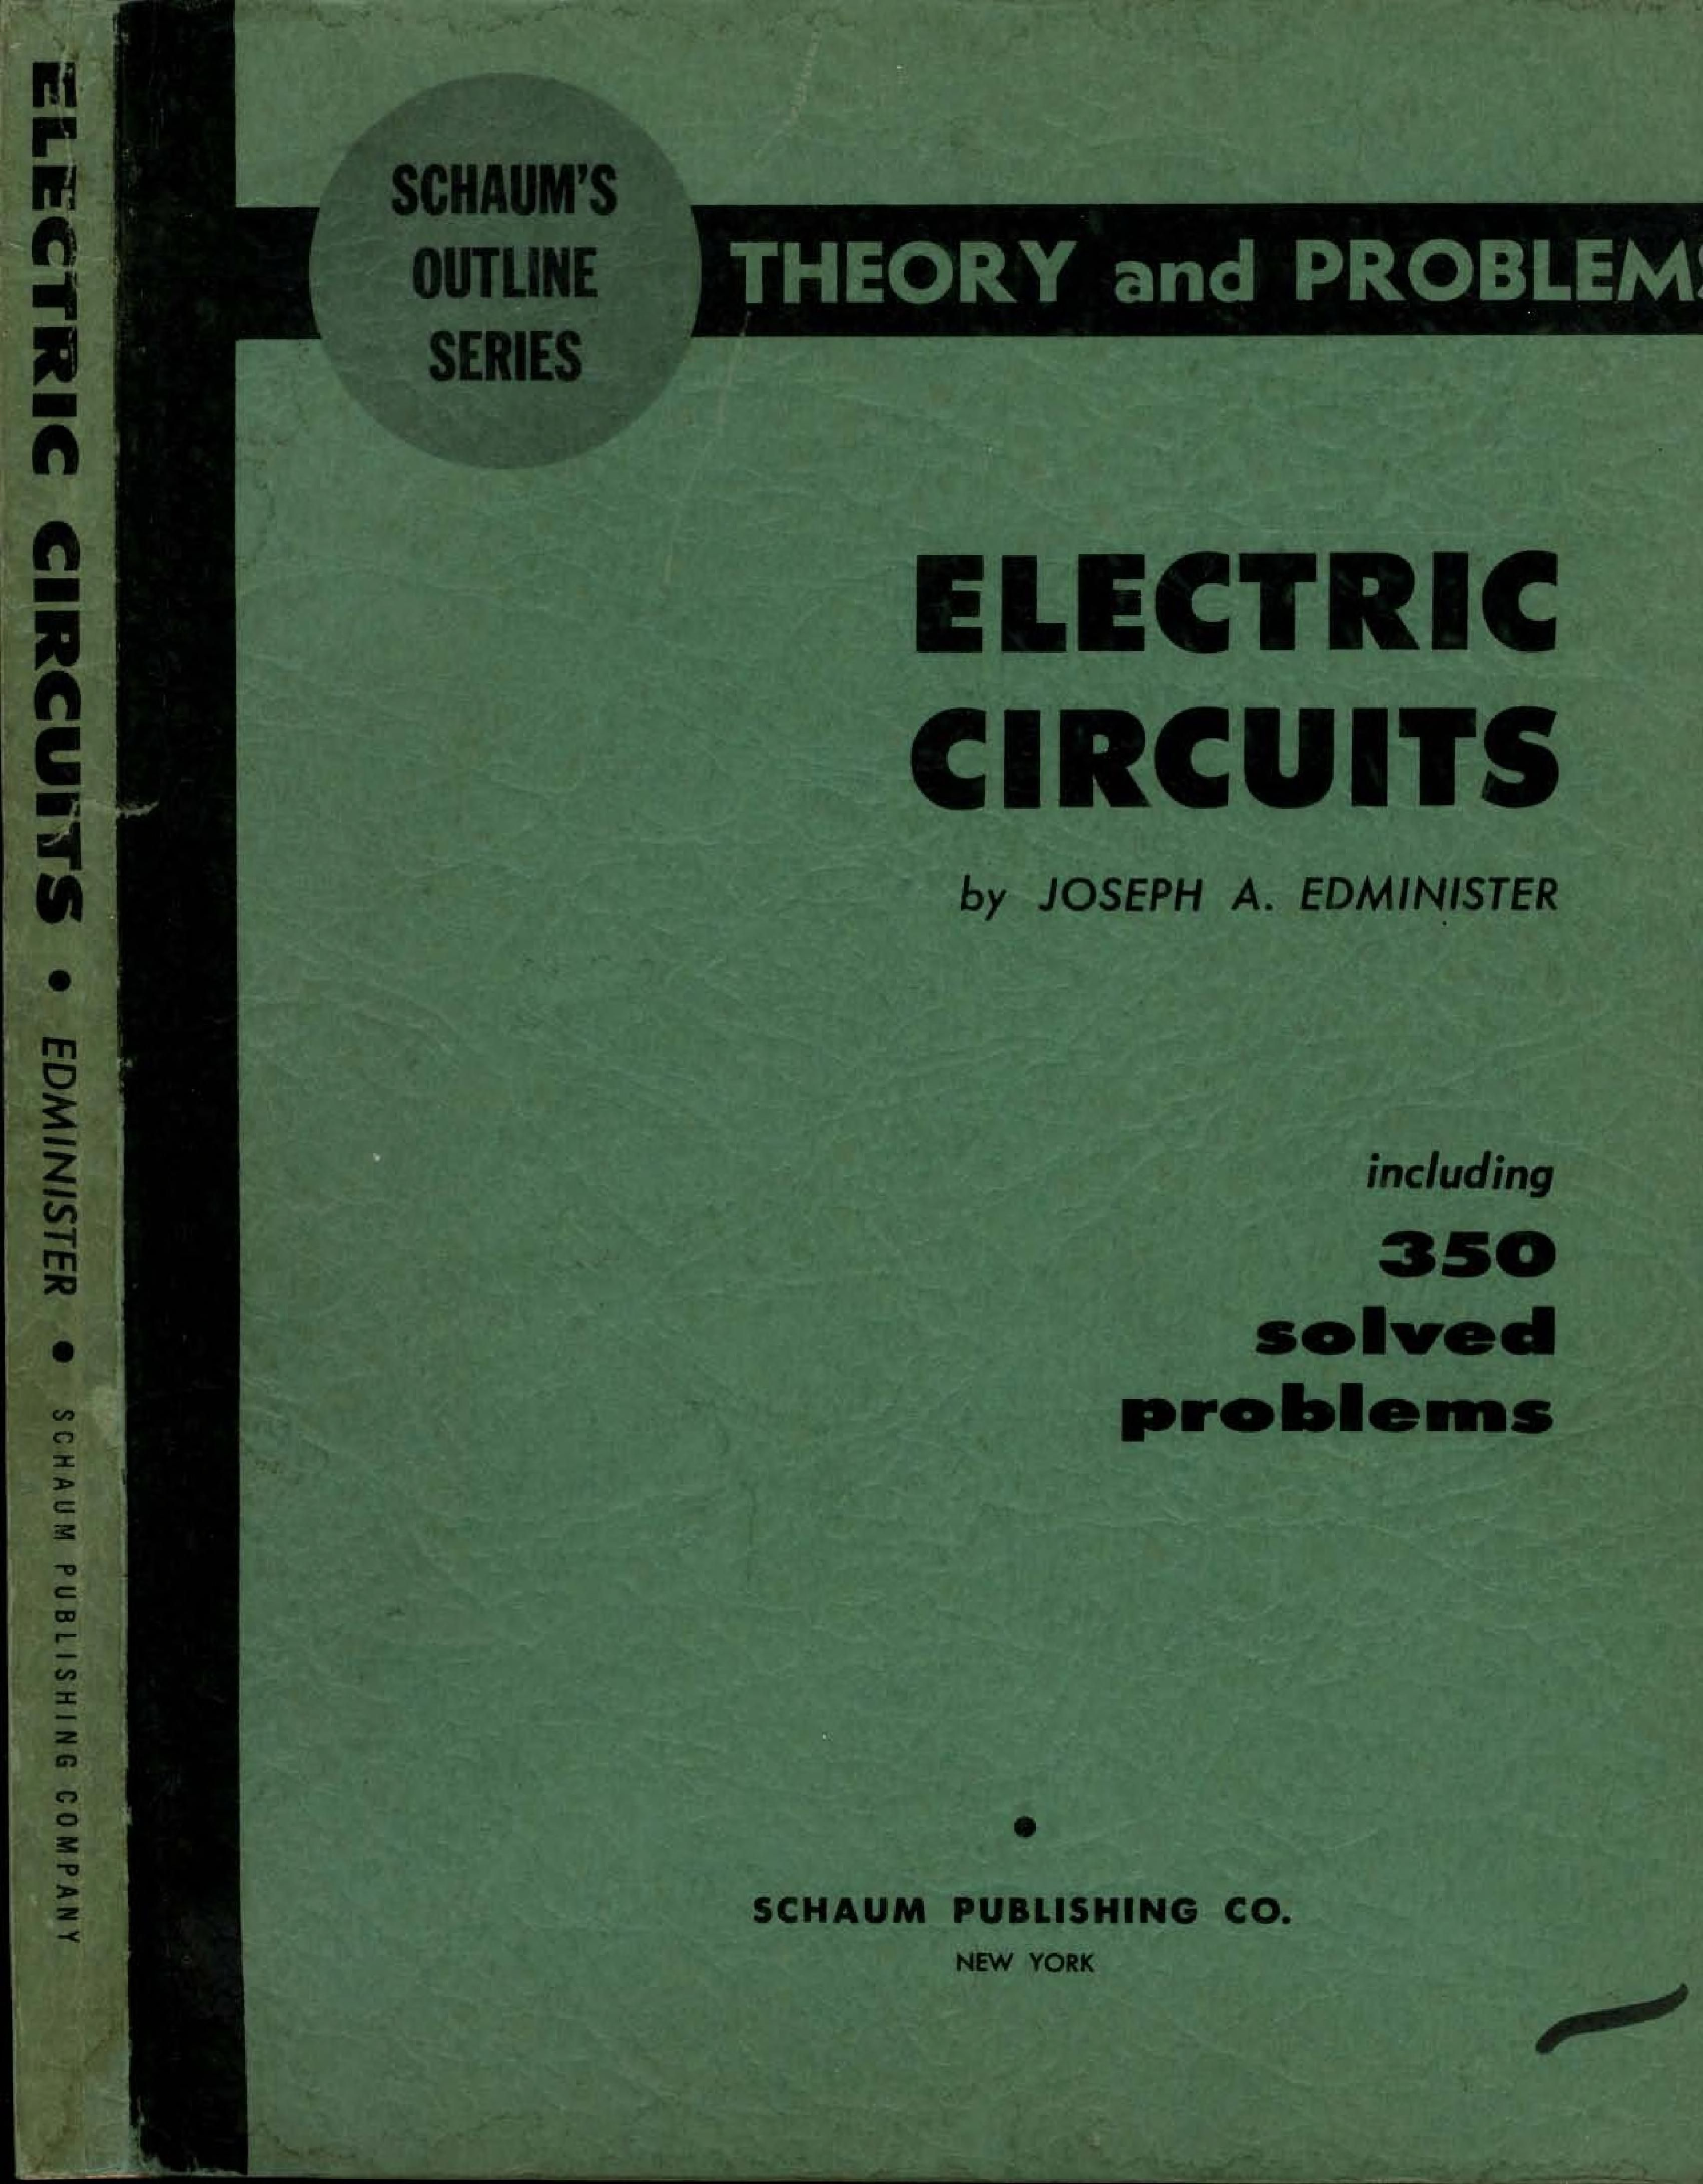 Schaums Theory And Problems Of Electric Circuits Electrical Electronic Circuit Book